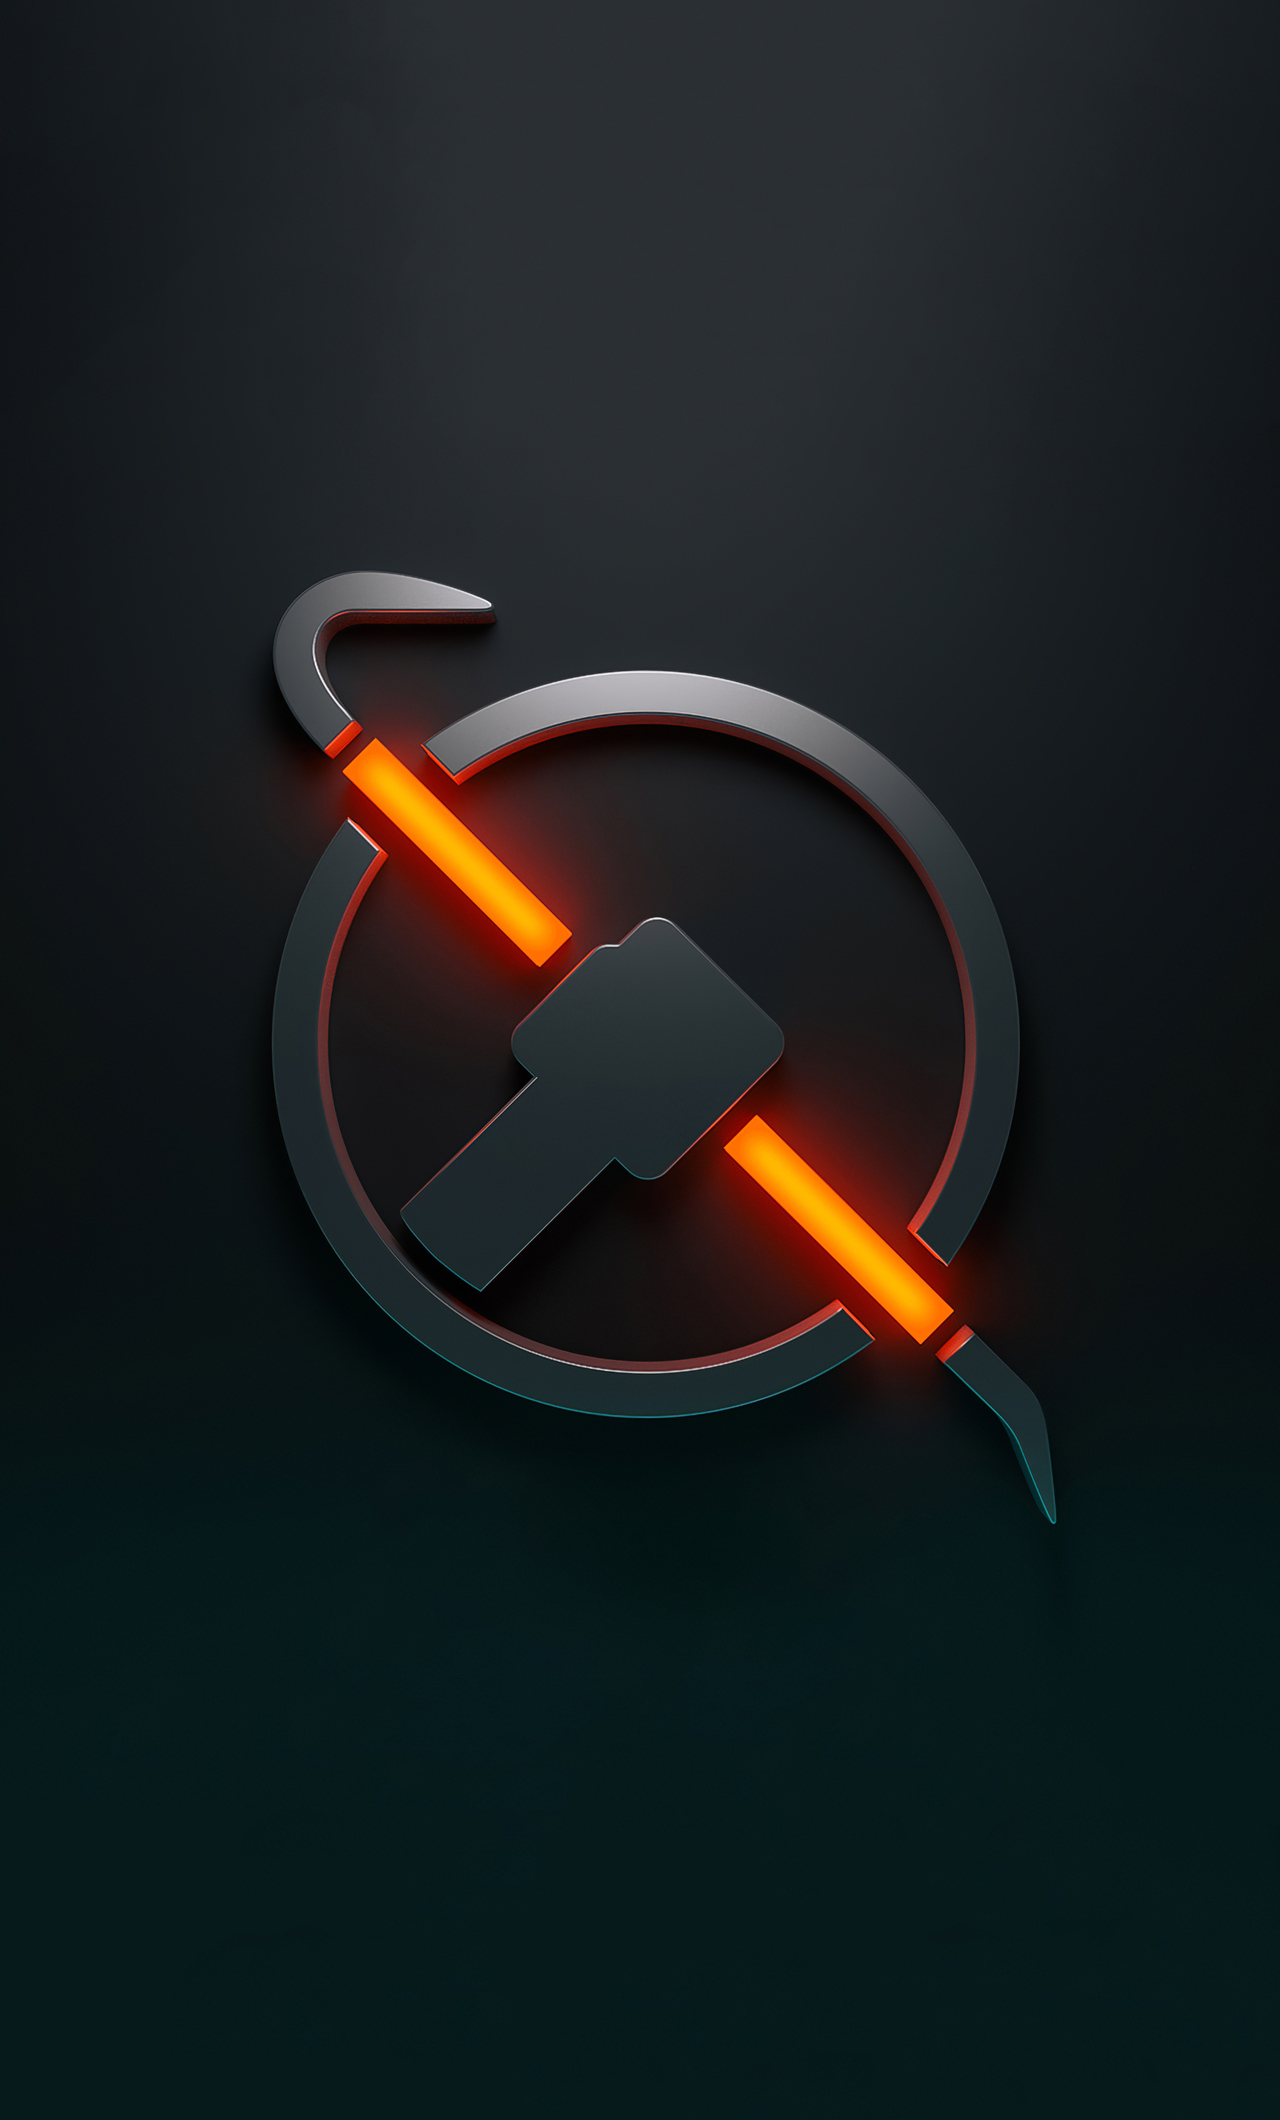 1280x2120 Half Life Logo 4k Iphone 6 Hd 4k Wallpapers Images Backgrounds Photos And Pictures